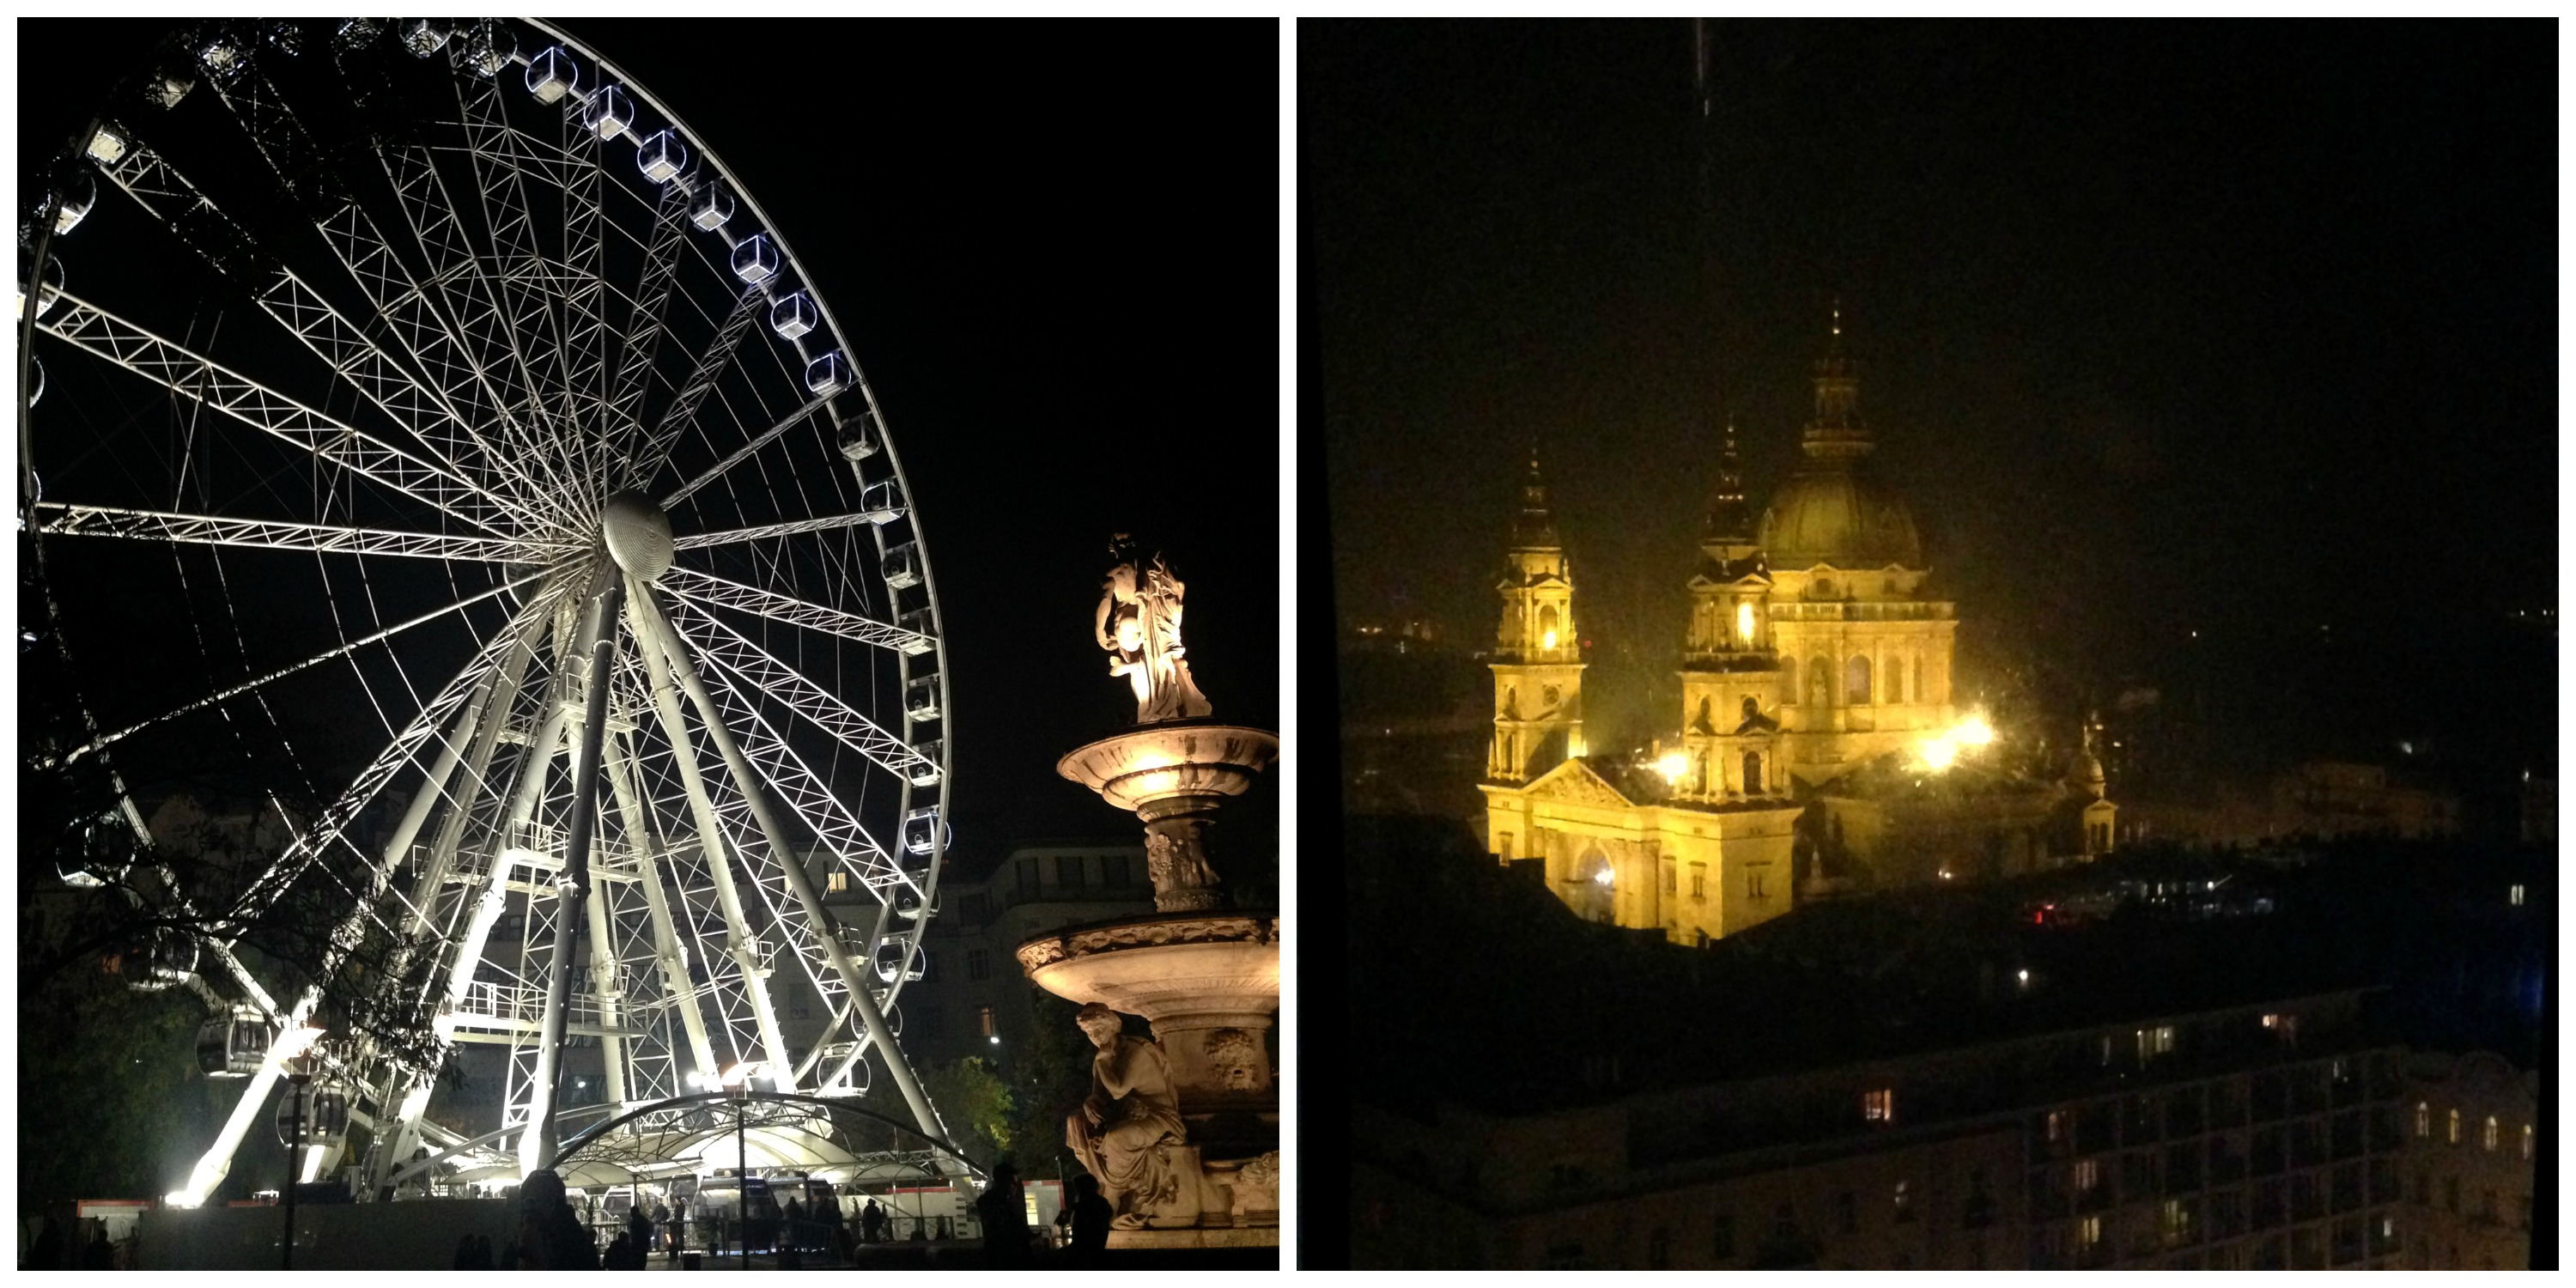 Sziget Eye and a view of St. Stephen's Basilica from the top